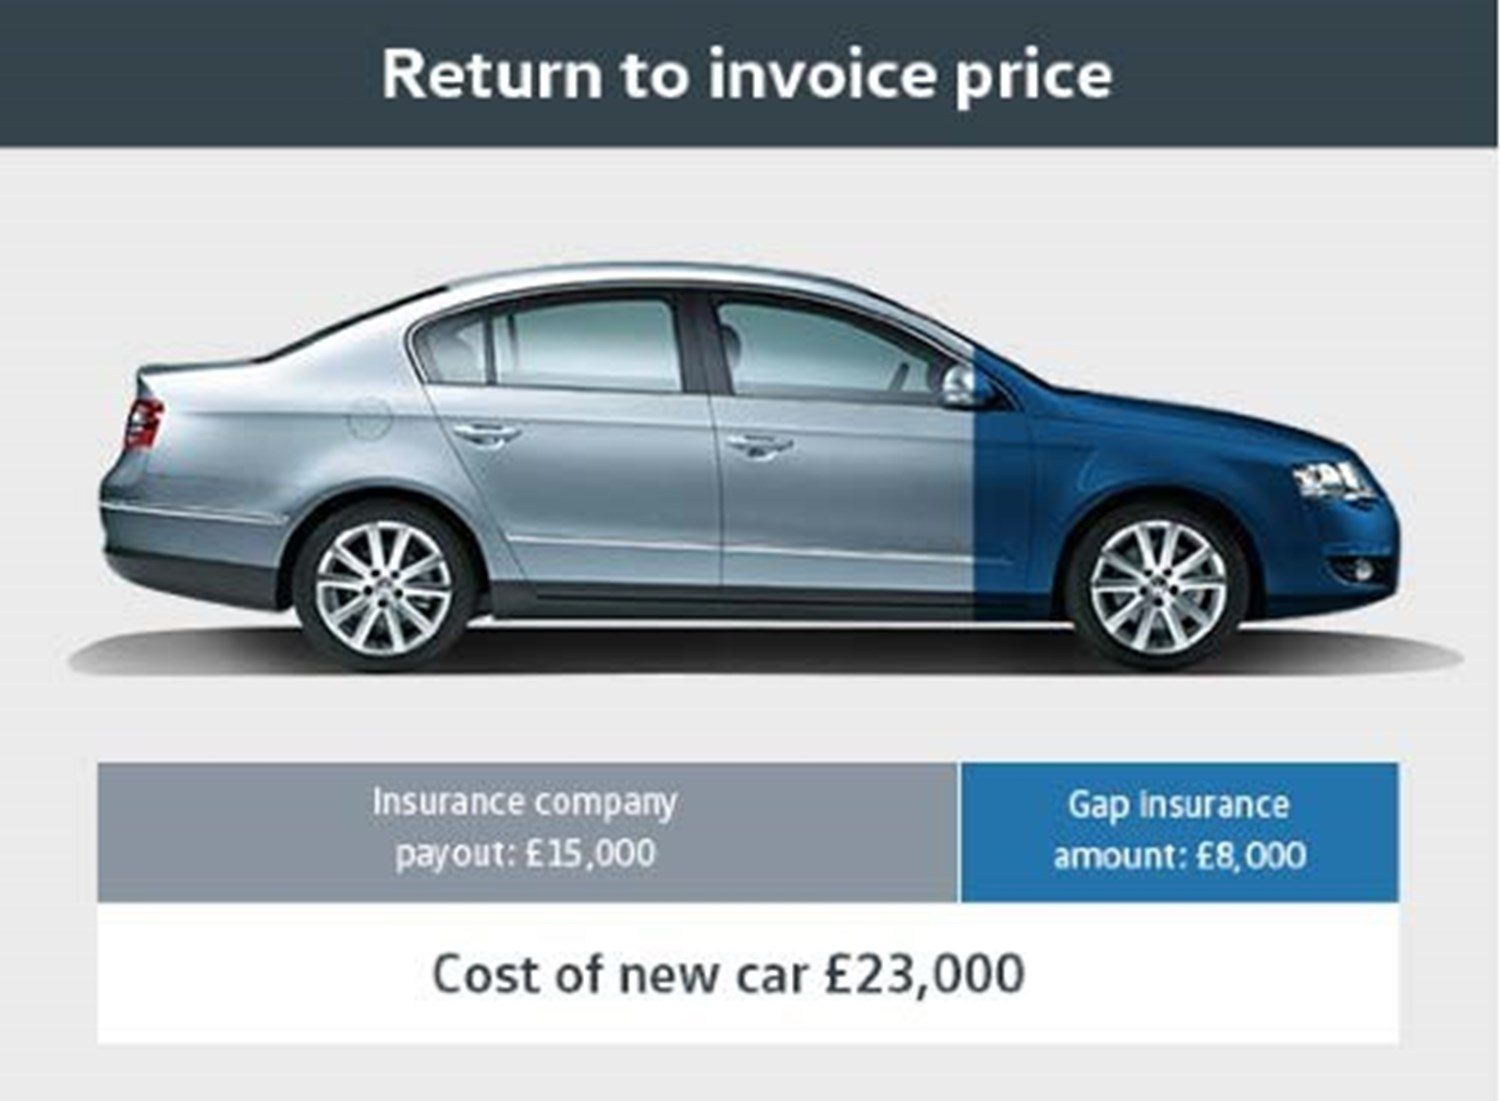 Gap Insurance explanation with Volkswagen Passat